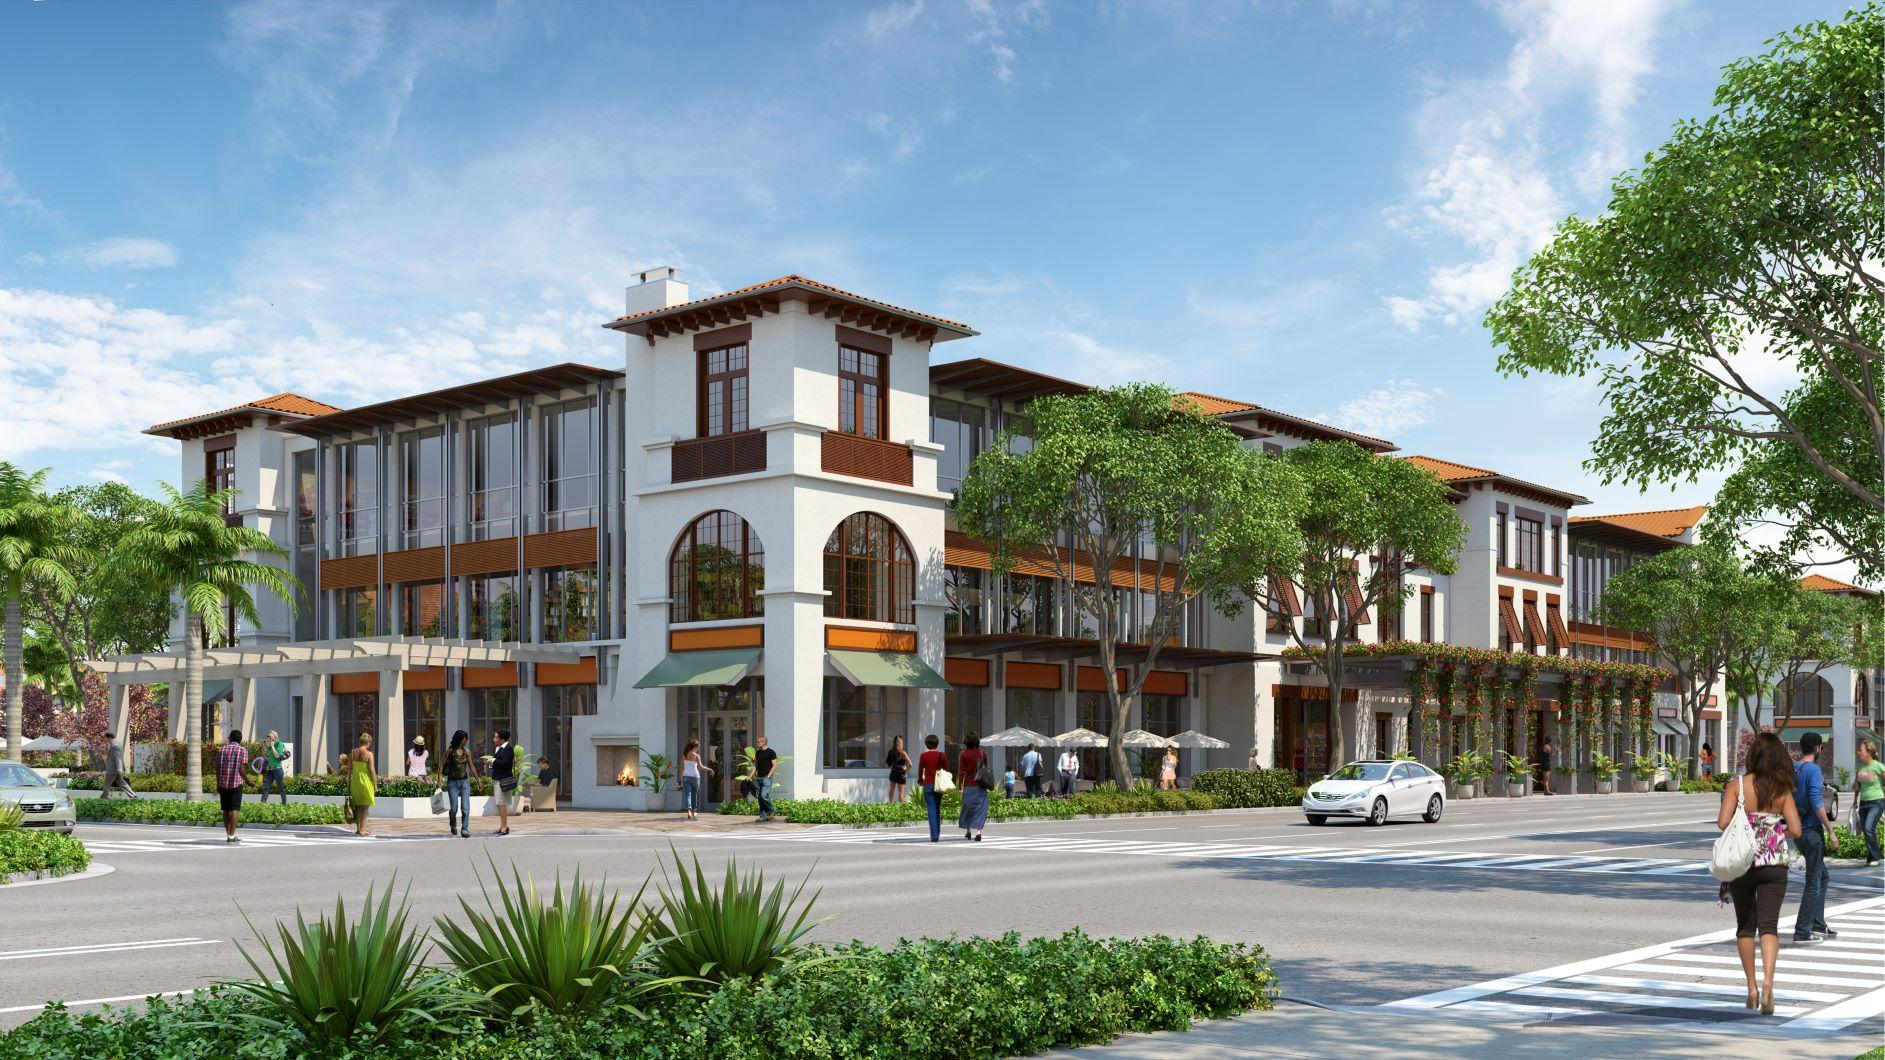 Delray-View-1_COLOR-5.28.13.jpg#asset:592